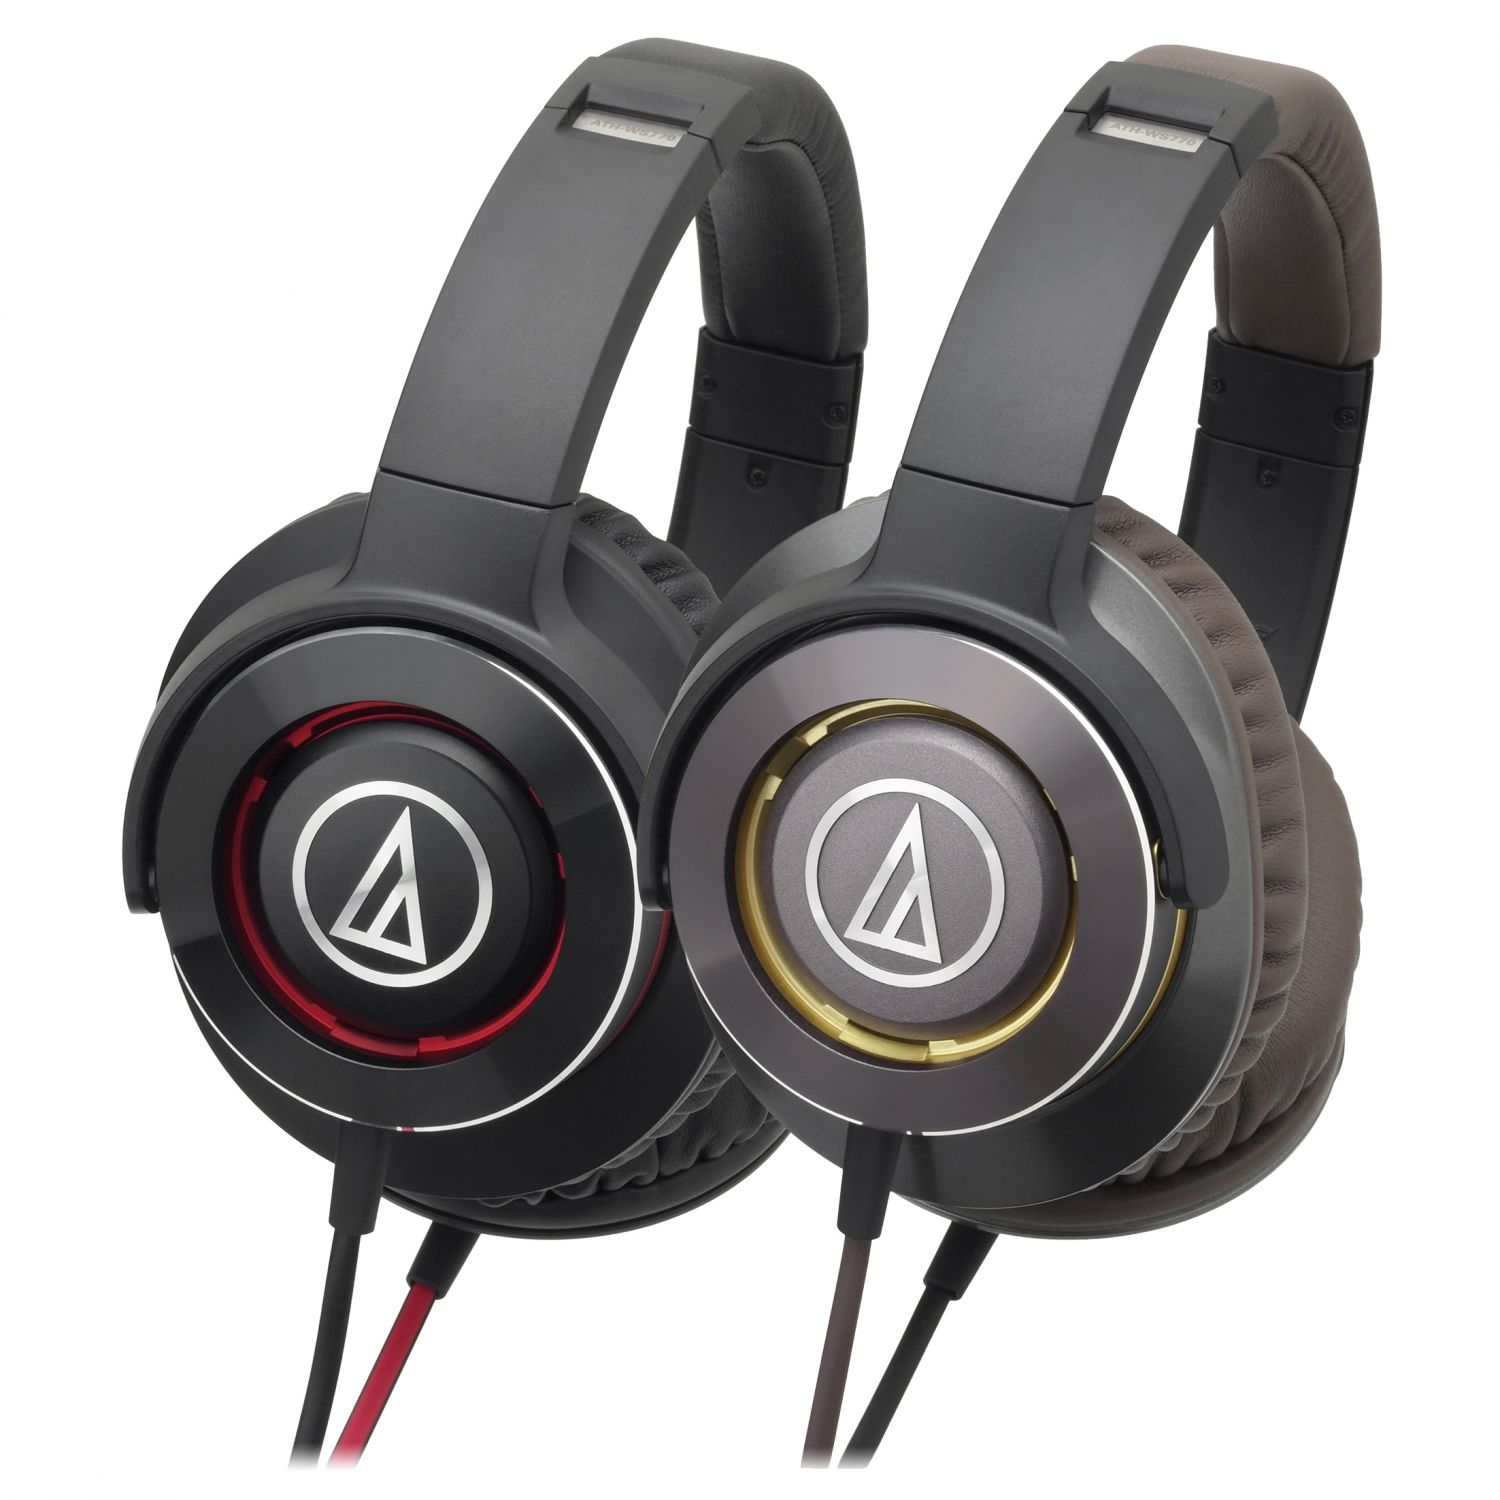 Image result for Audio Technica ATH-WS770iS